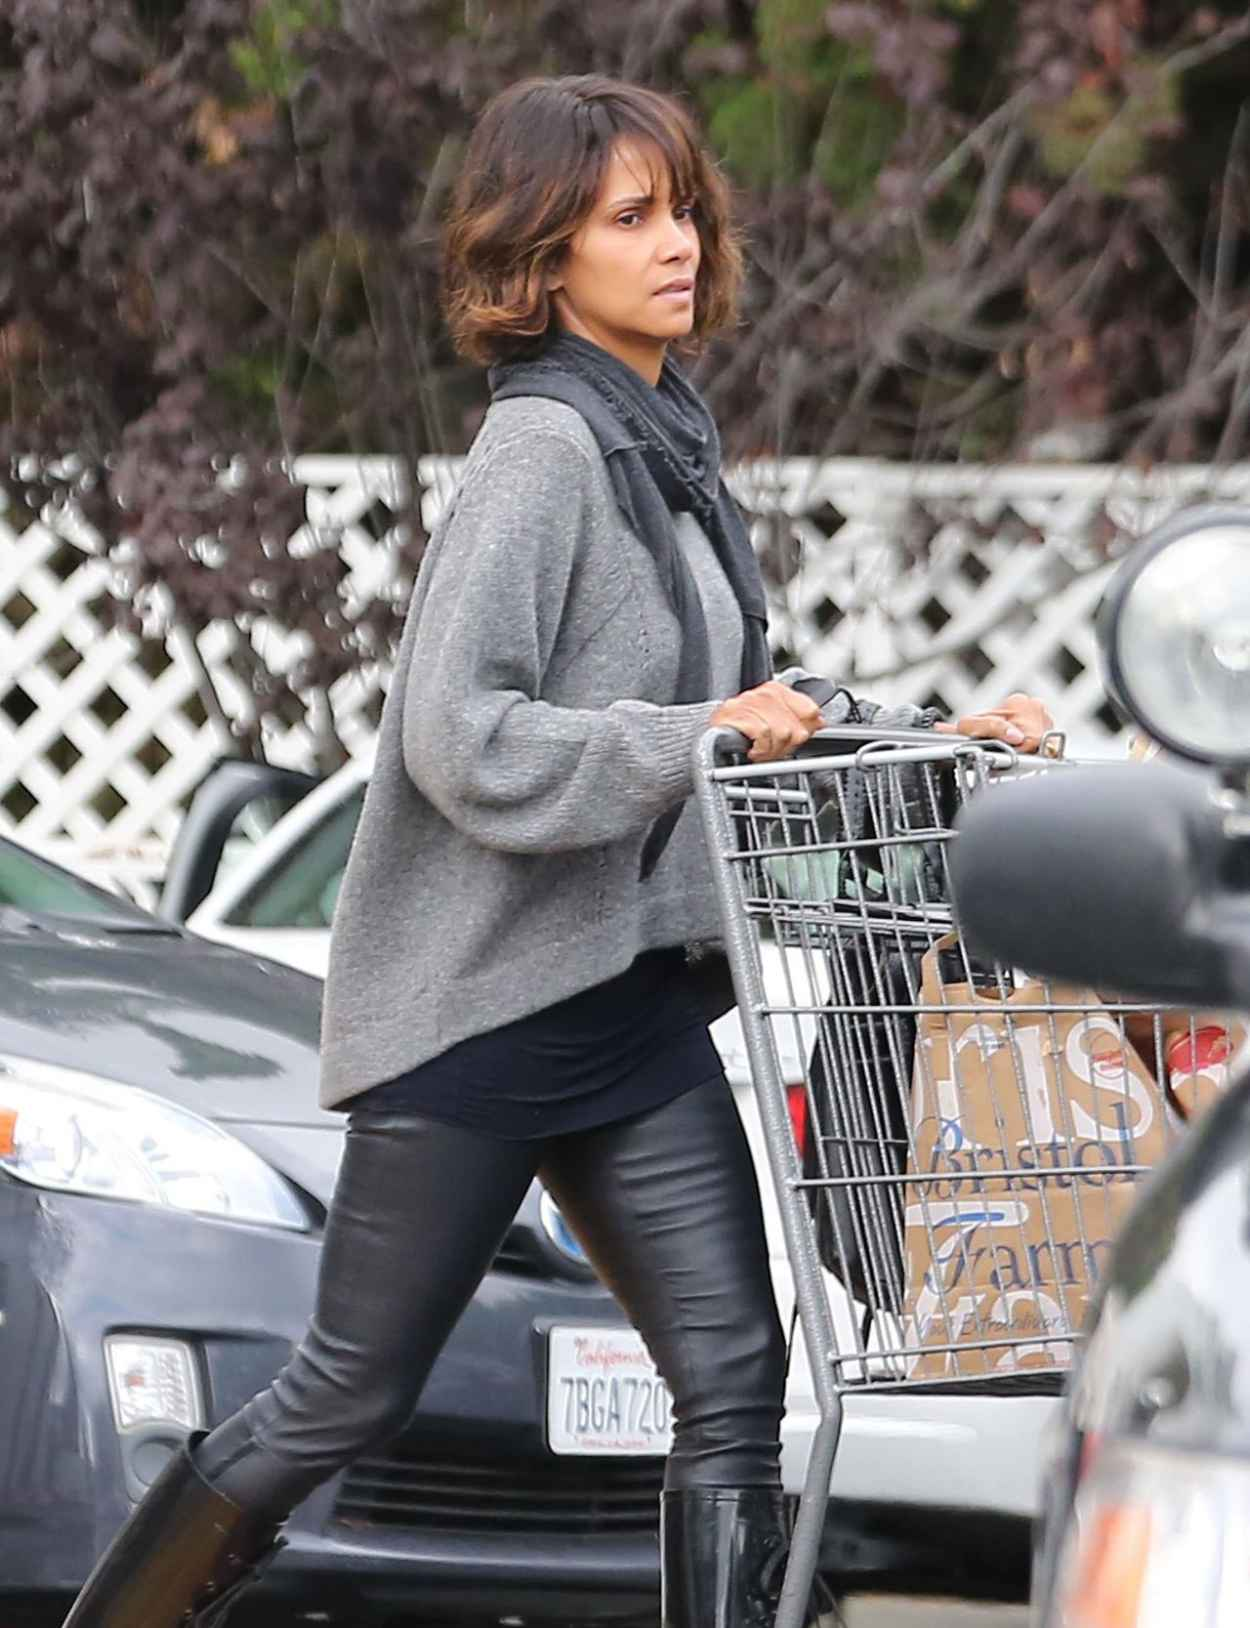 Halle Berry Street Style - Stocks up on Groceries at Bristol Farms in Beverly Hills - Dec. 2015-1